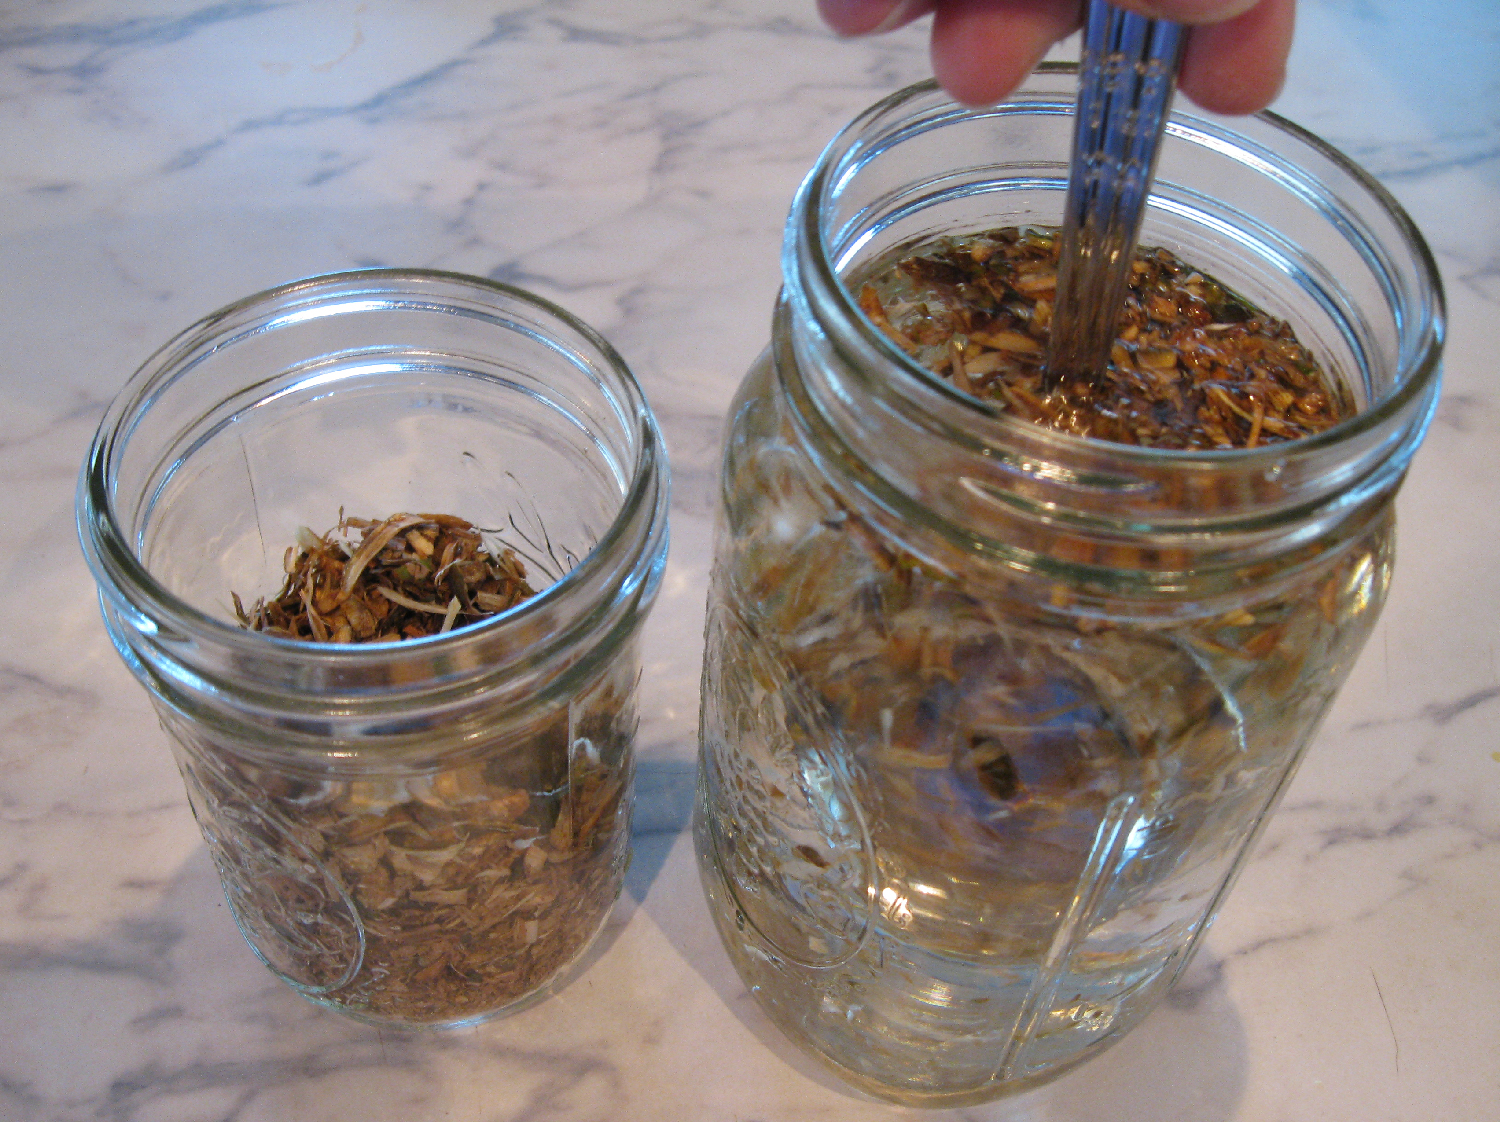 Devil's club dried inner root bark sun tea